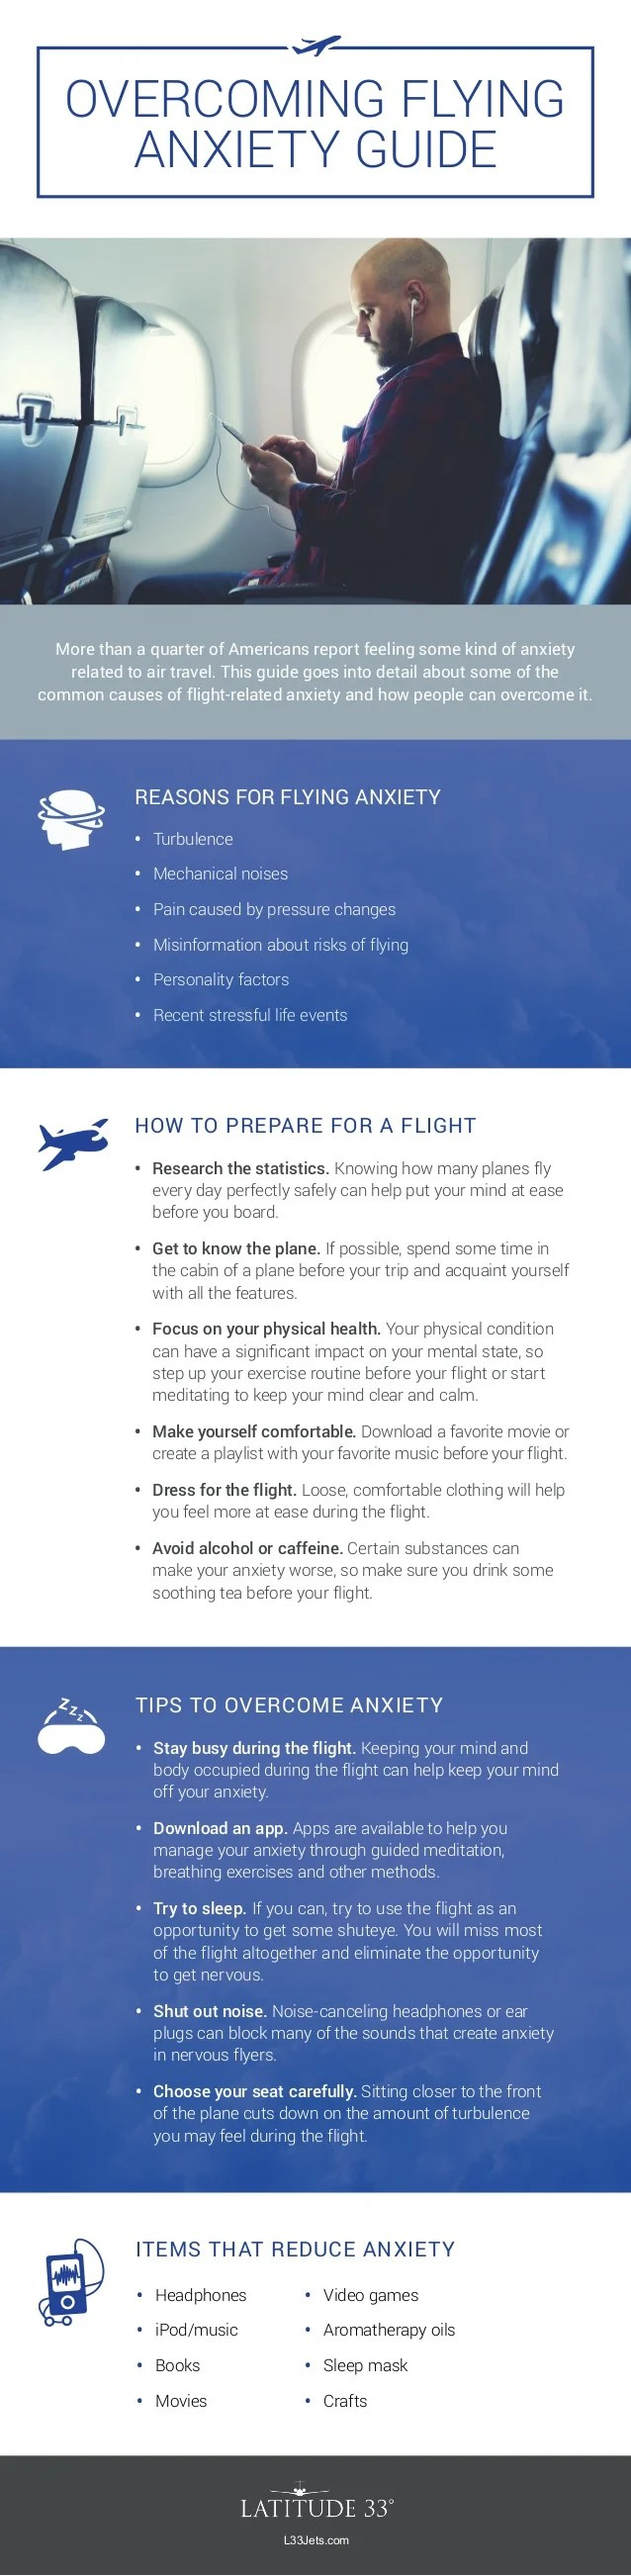 Fear of Flying Infographic